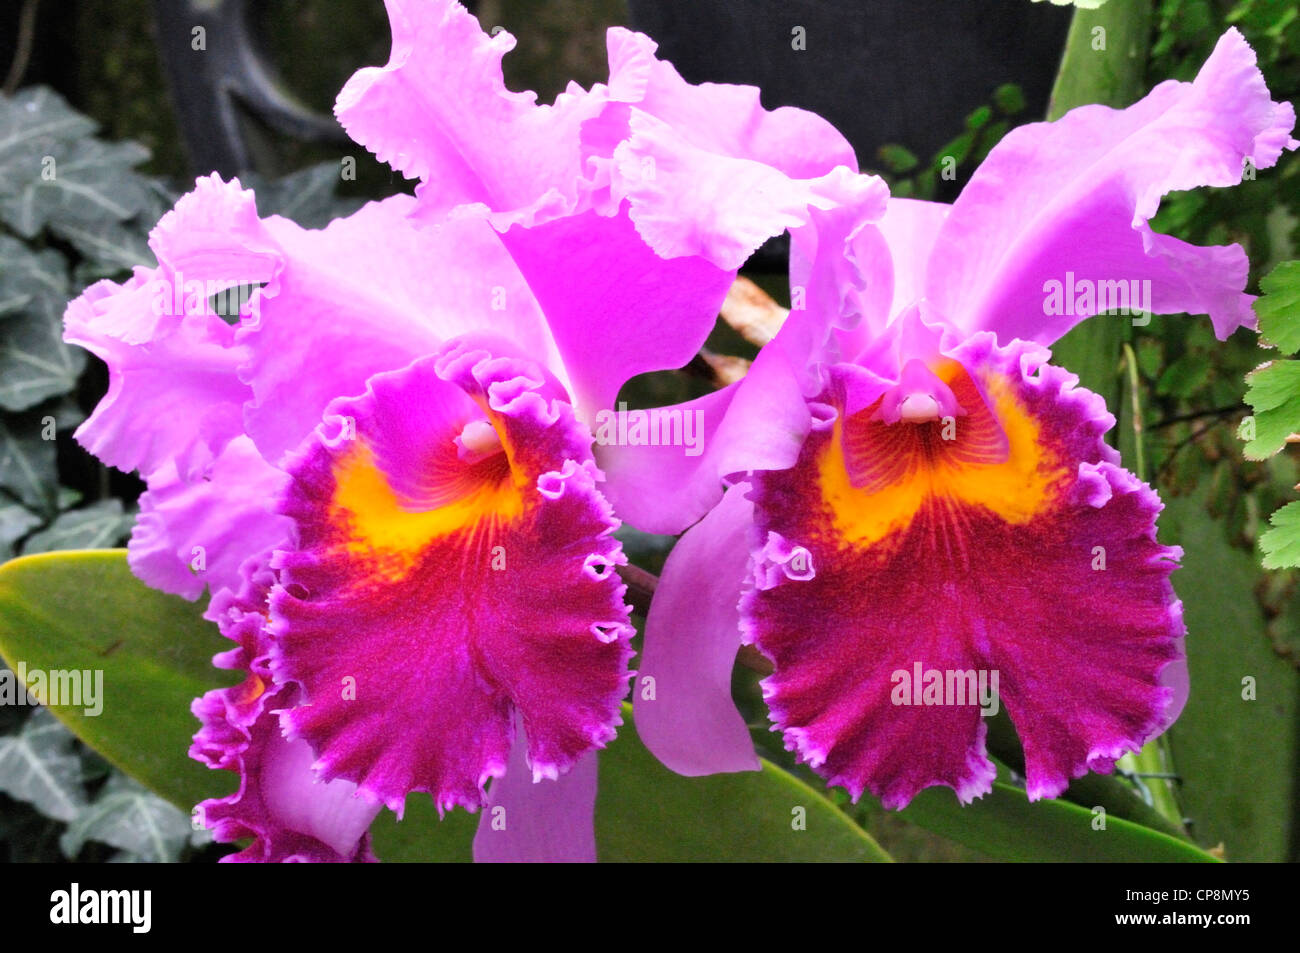 Cattleya Lavender Valentine, a member of the orchid family - Stock Image